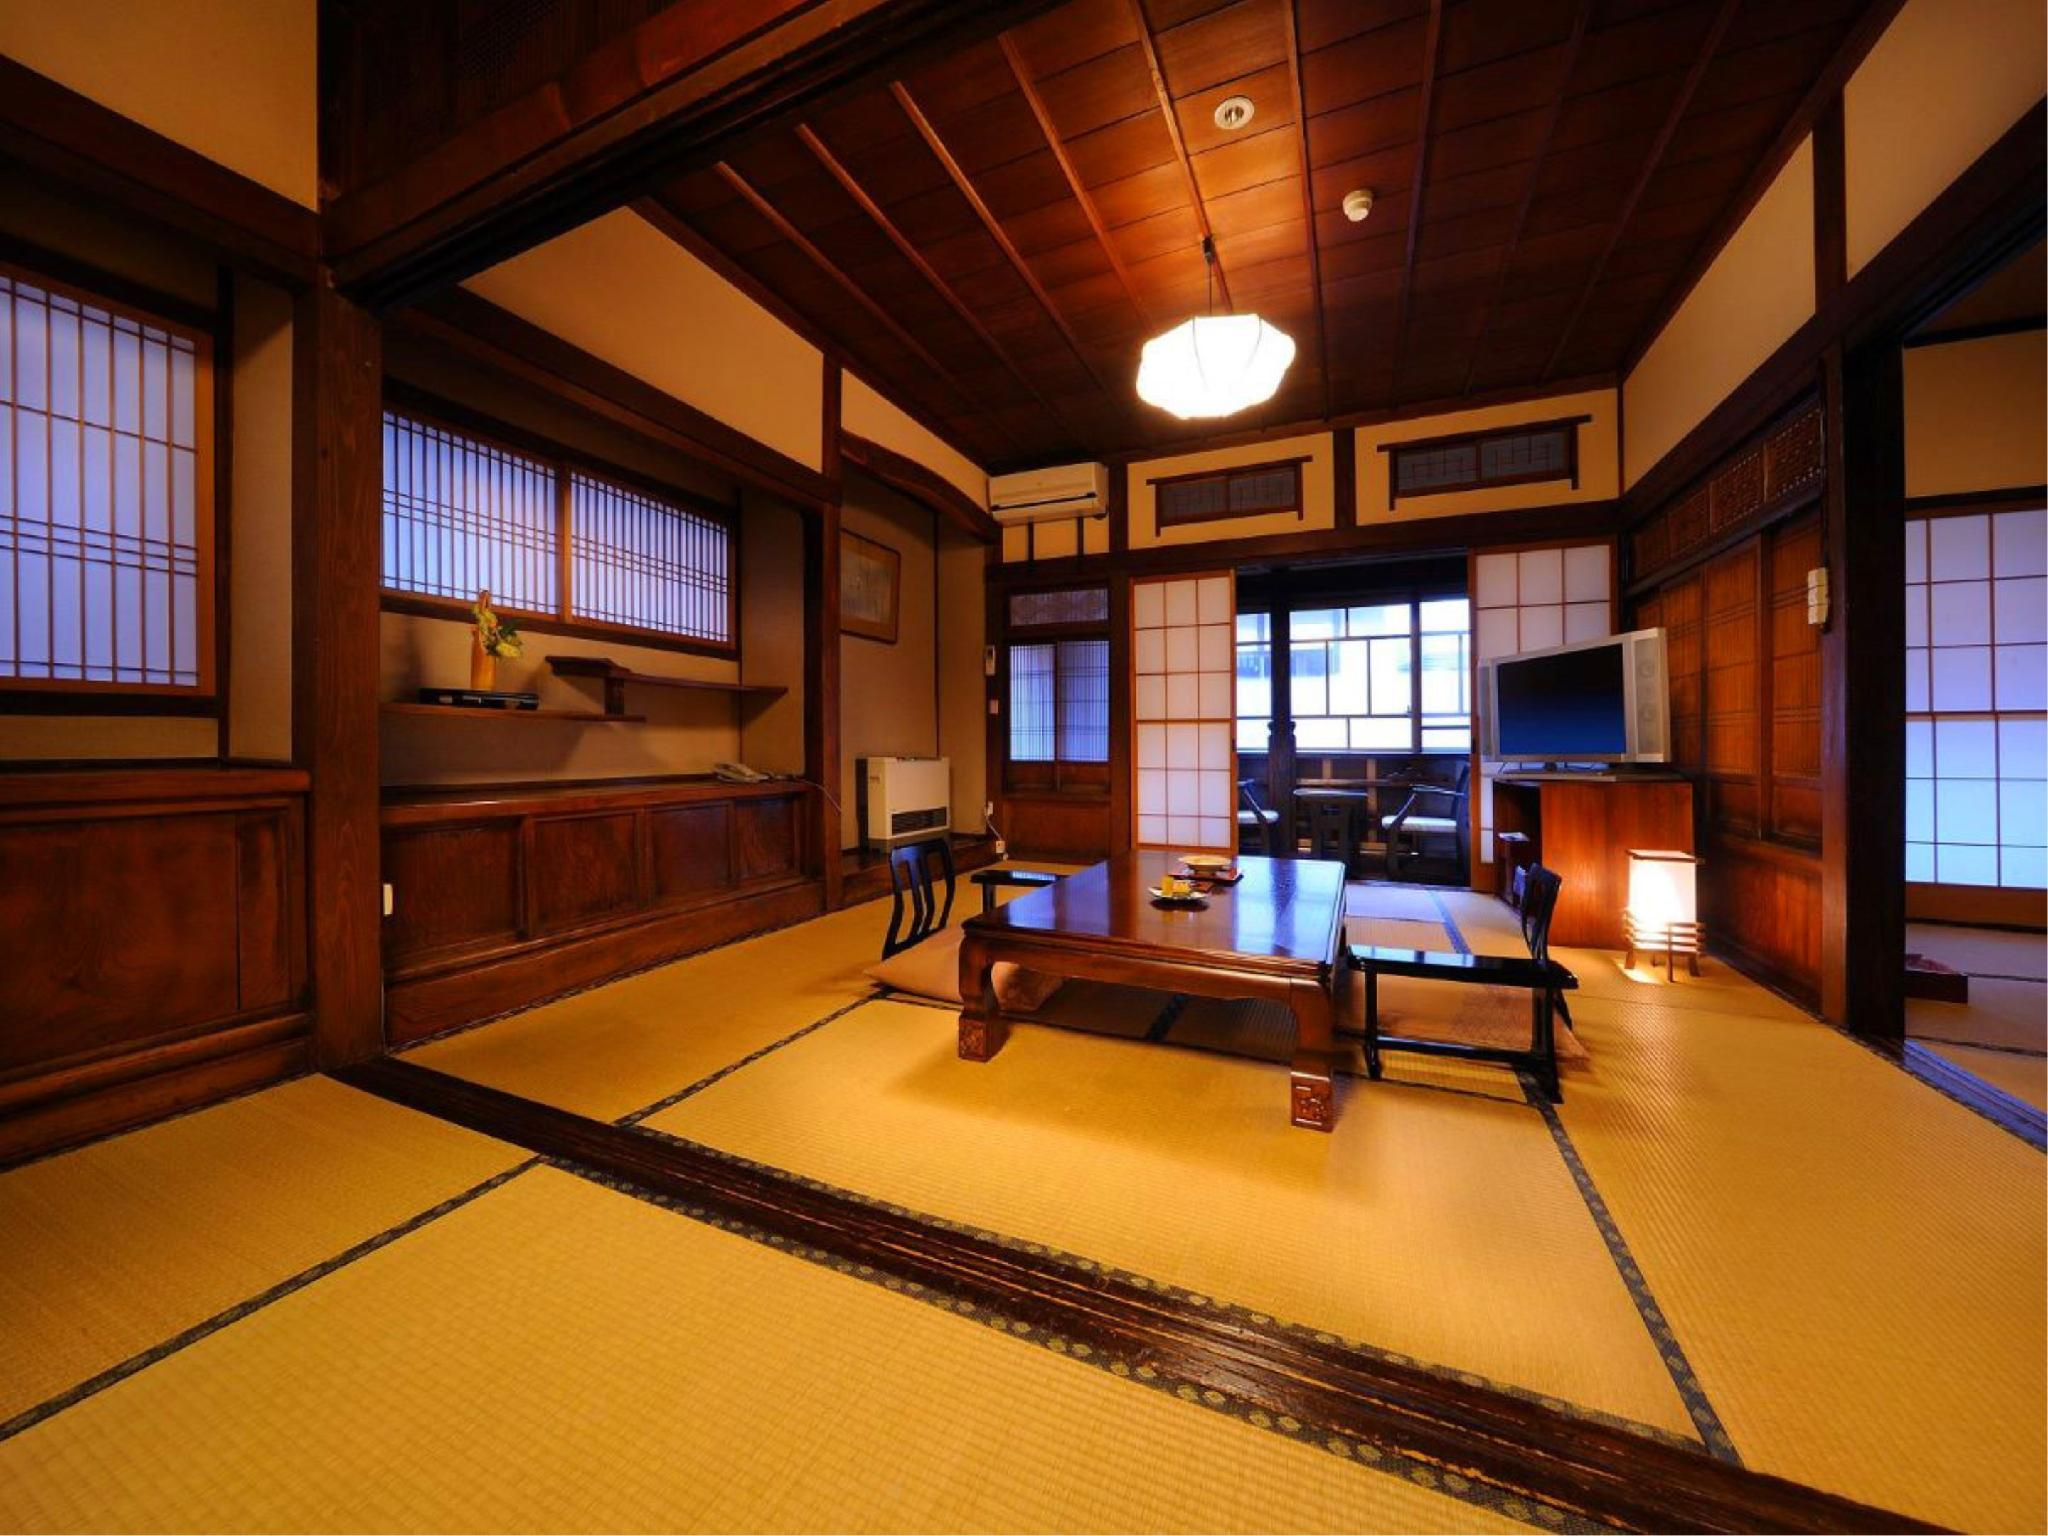 和式房 (2020年4月1日起禁烟) (Japanese-style Room (*Non-smoking from 2020/4/1))